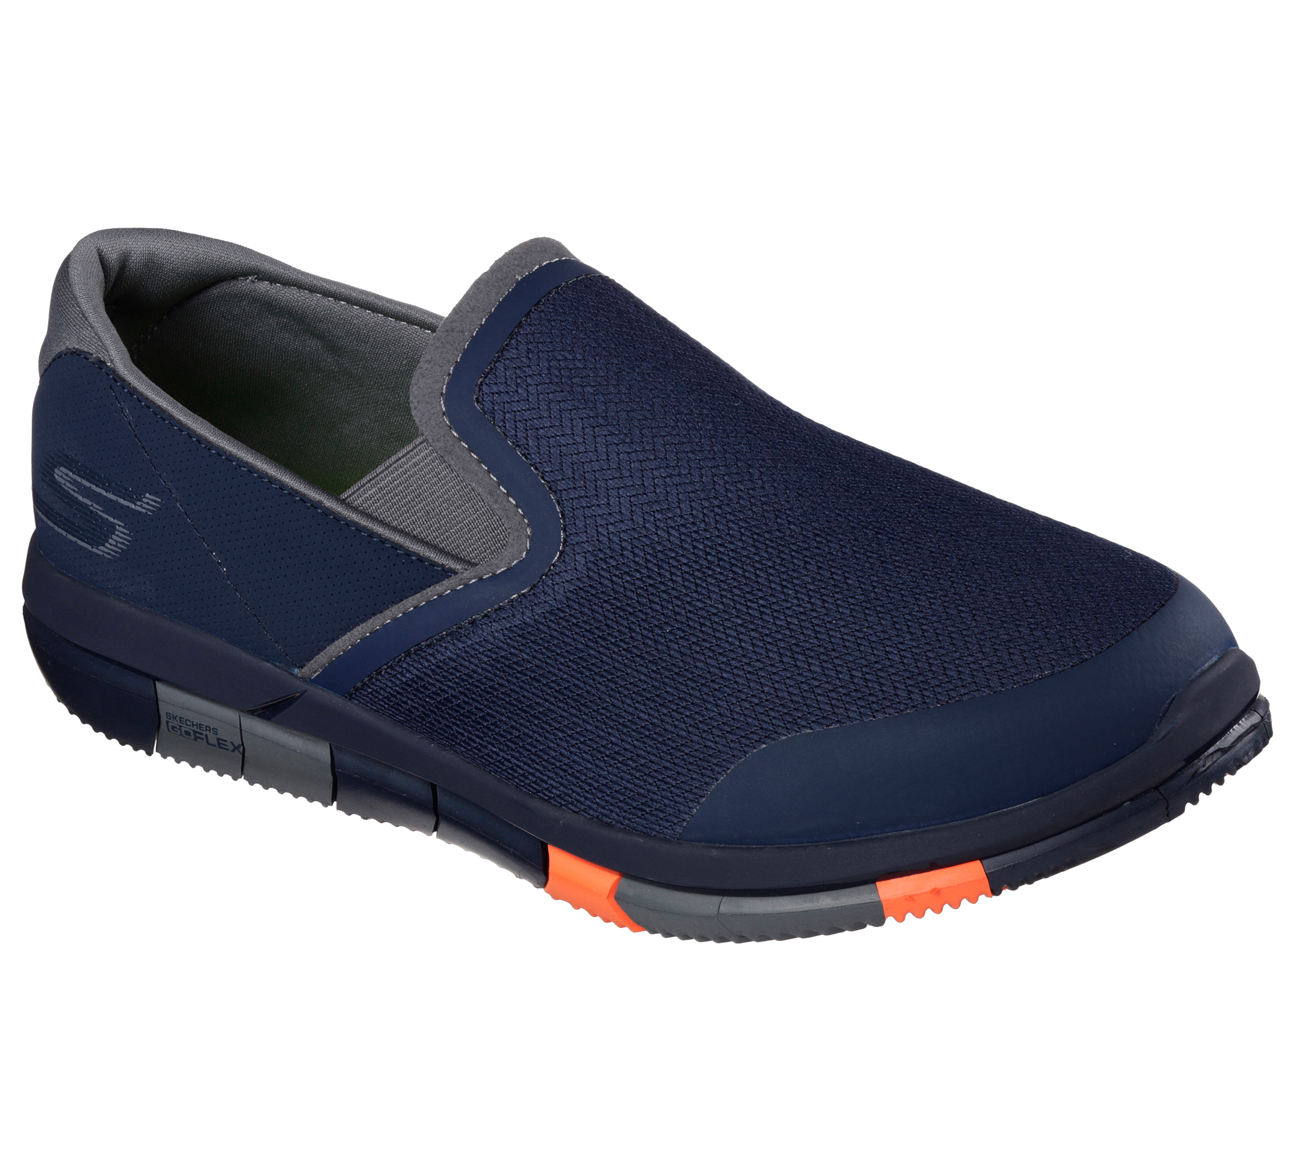 Shop Skechers footwear for Women, Men and Kids. Shop new Skechers, Skechers on sale. Free Shipping and Free Returns*.